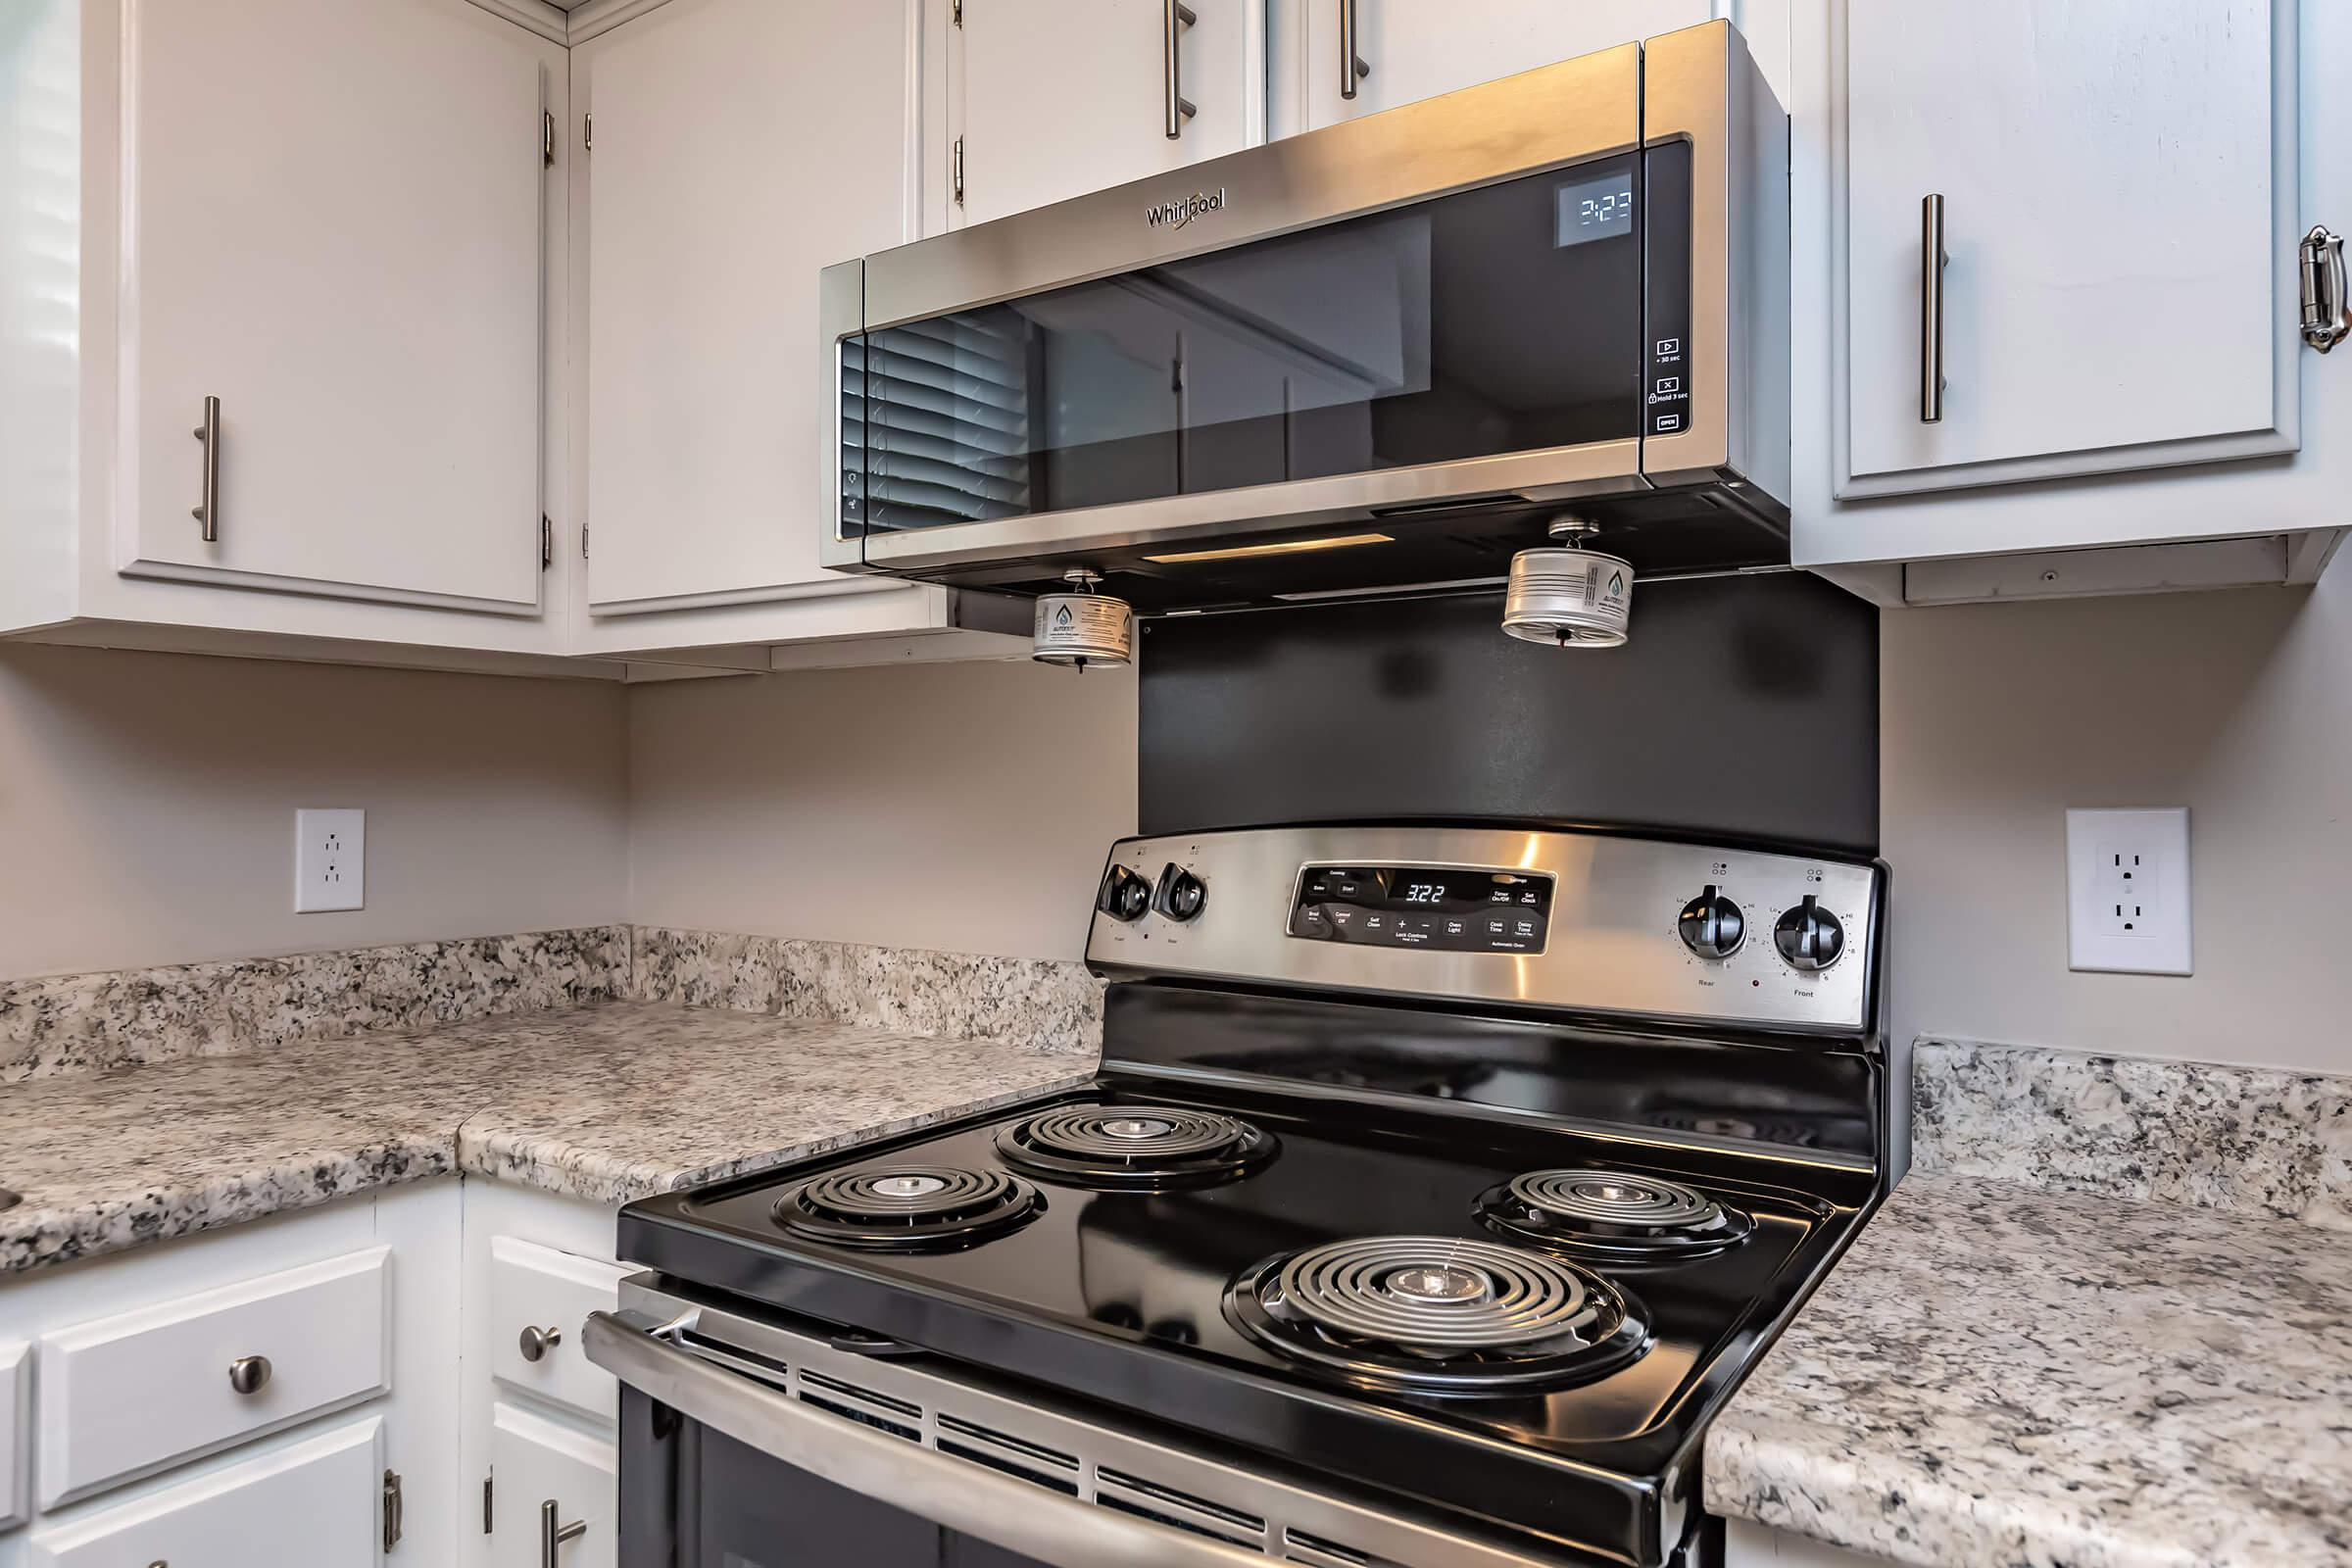 Microwave and range in kitchen of two bedroom townhome